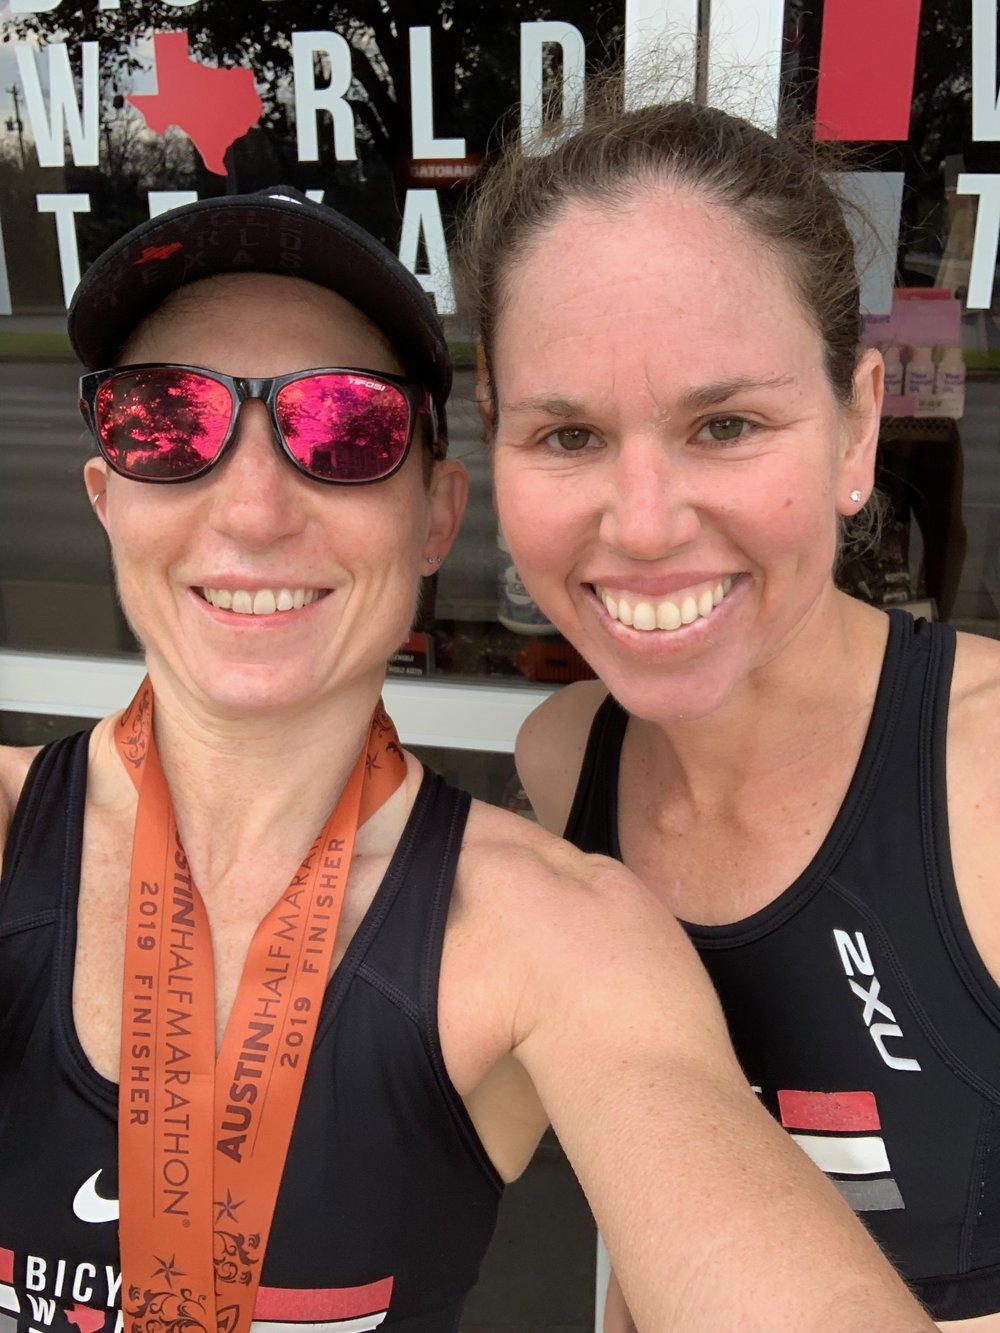 """Me and Natasha Van Der Merwe after the Austin Half Marathon on Sunday. It was sort of like a """"Moms Day Out,"""" only with sweat instead of wine. :)"""